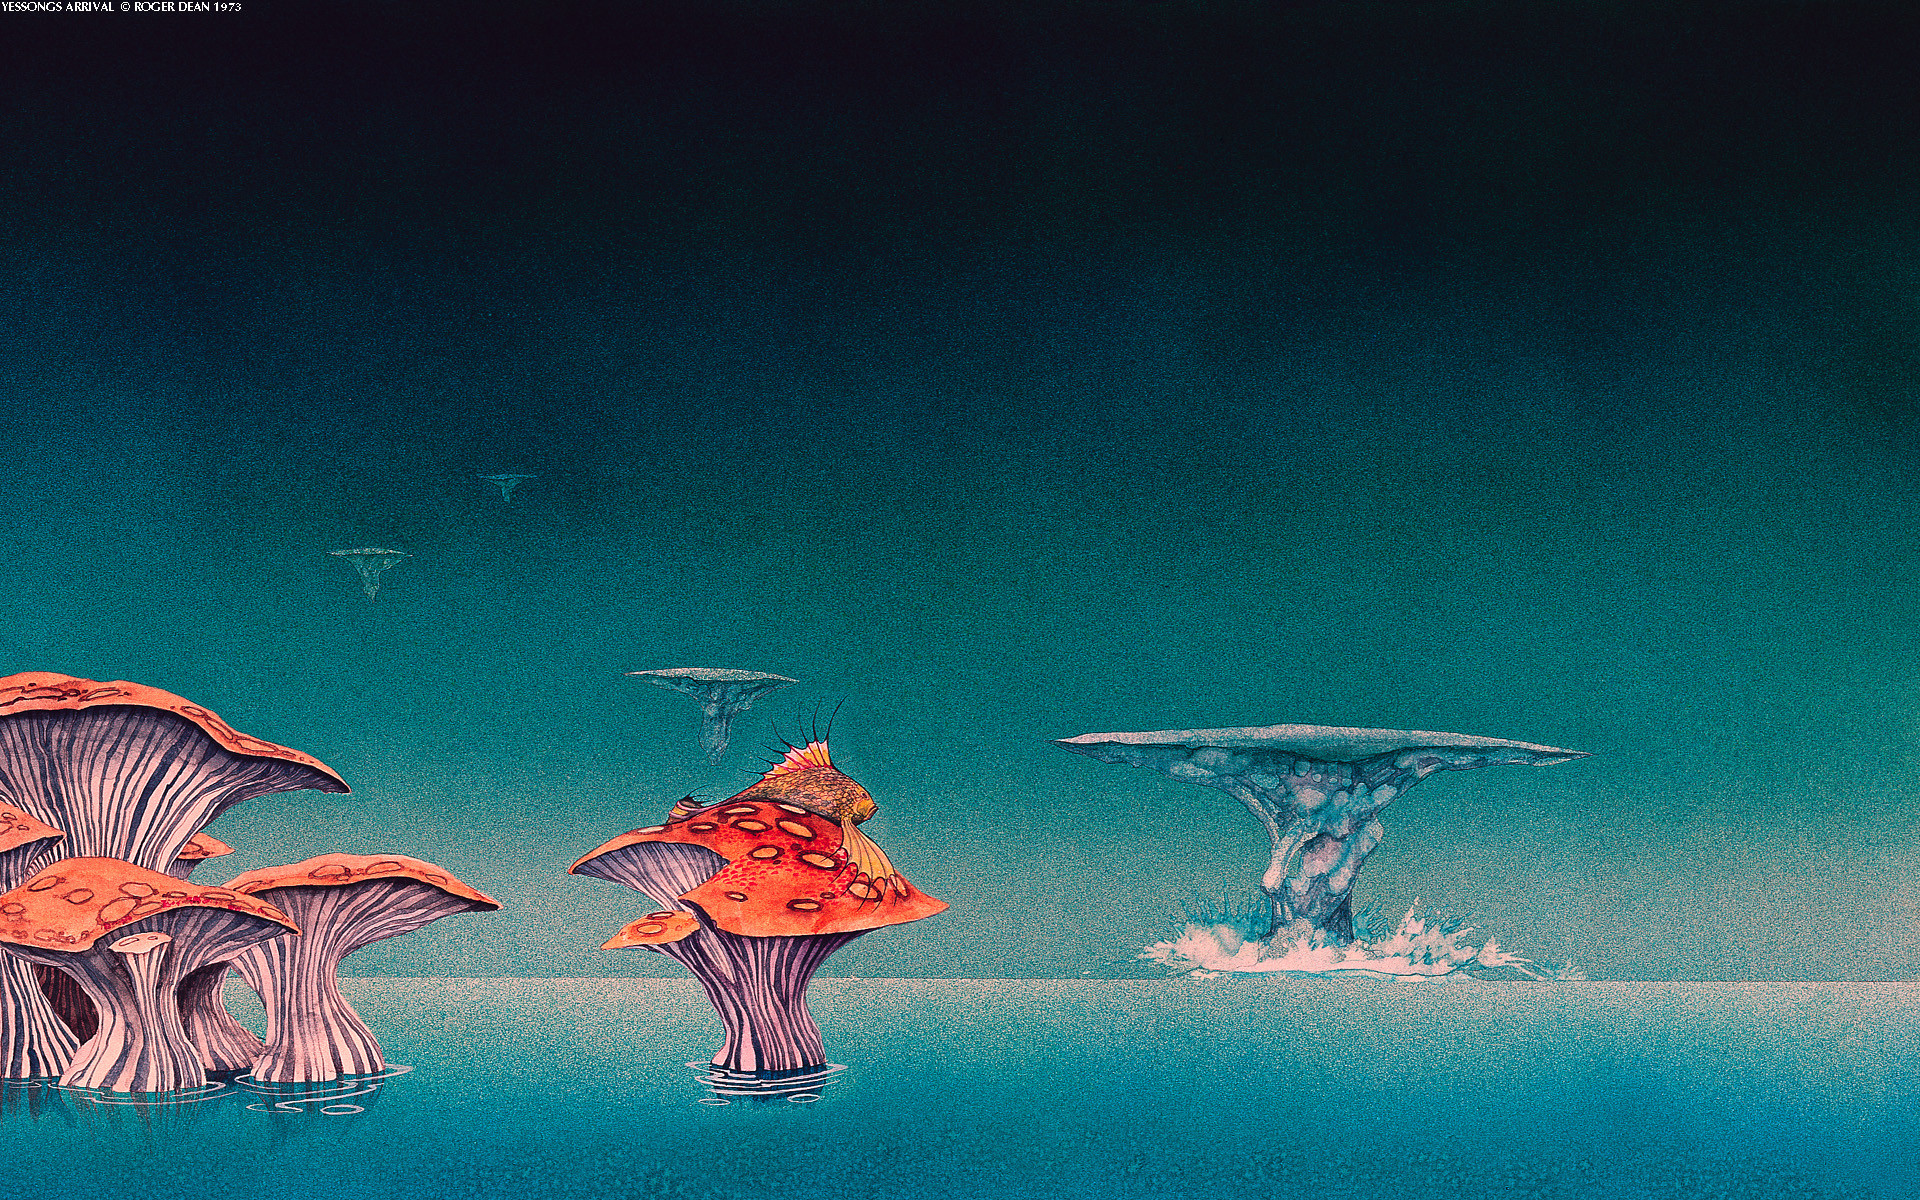 1920x1200 chanarchive.org | Roger Dean artwork | archived from 4chan /wg/ - Wallpapers